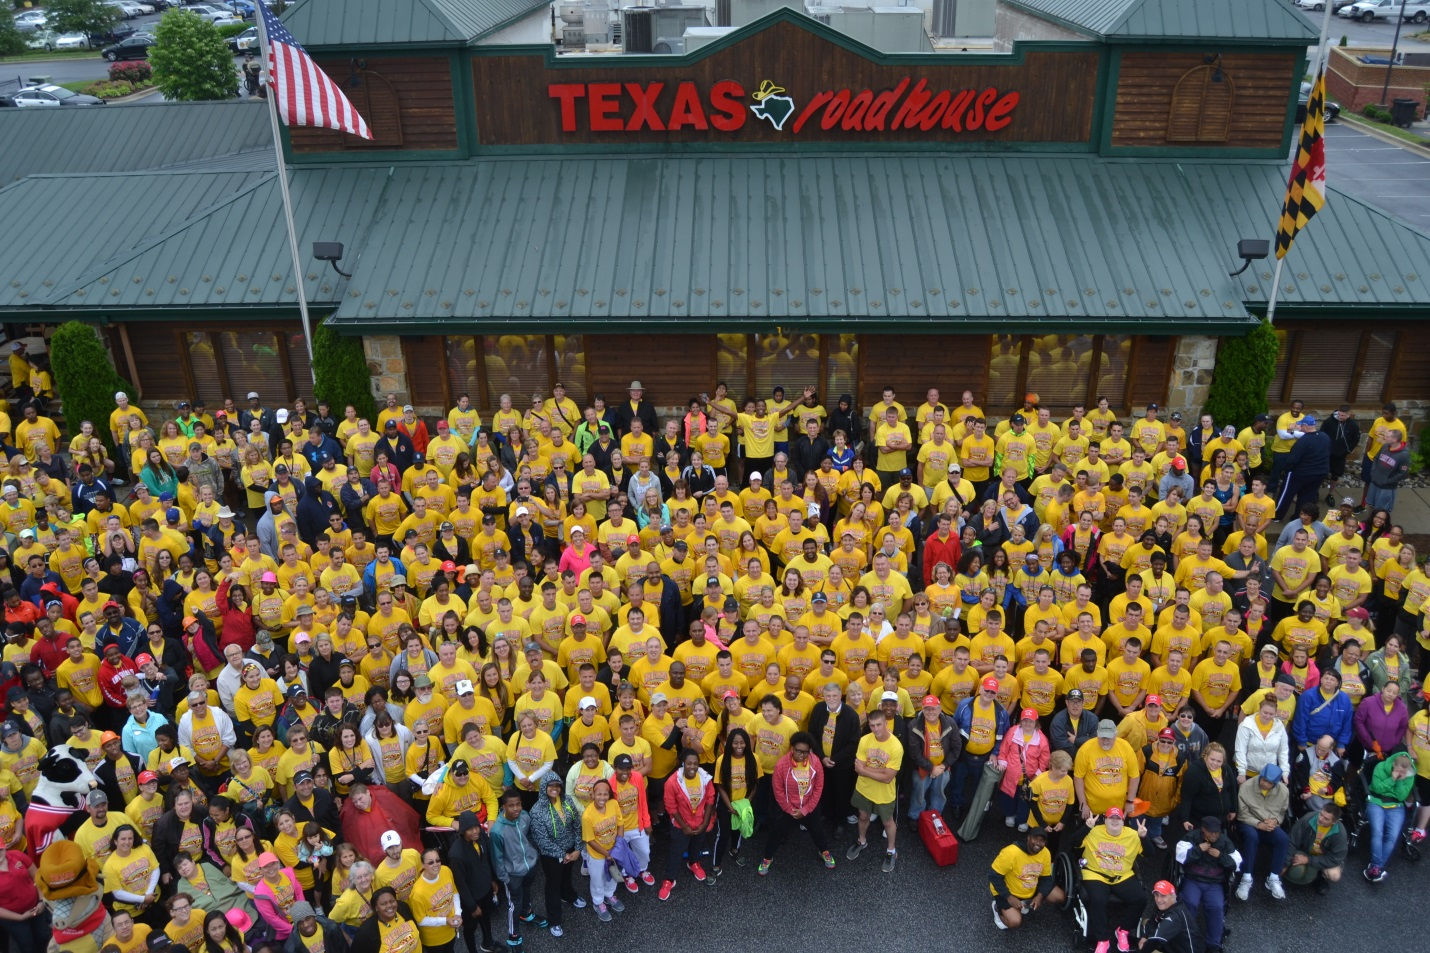 Participants in the Law Enforcement Torch Run gathered at Texas Roadhouse in La Plata before the start of the race